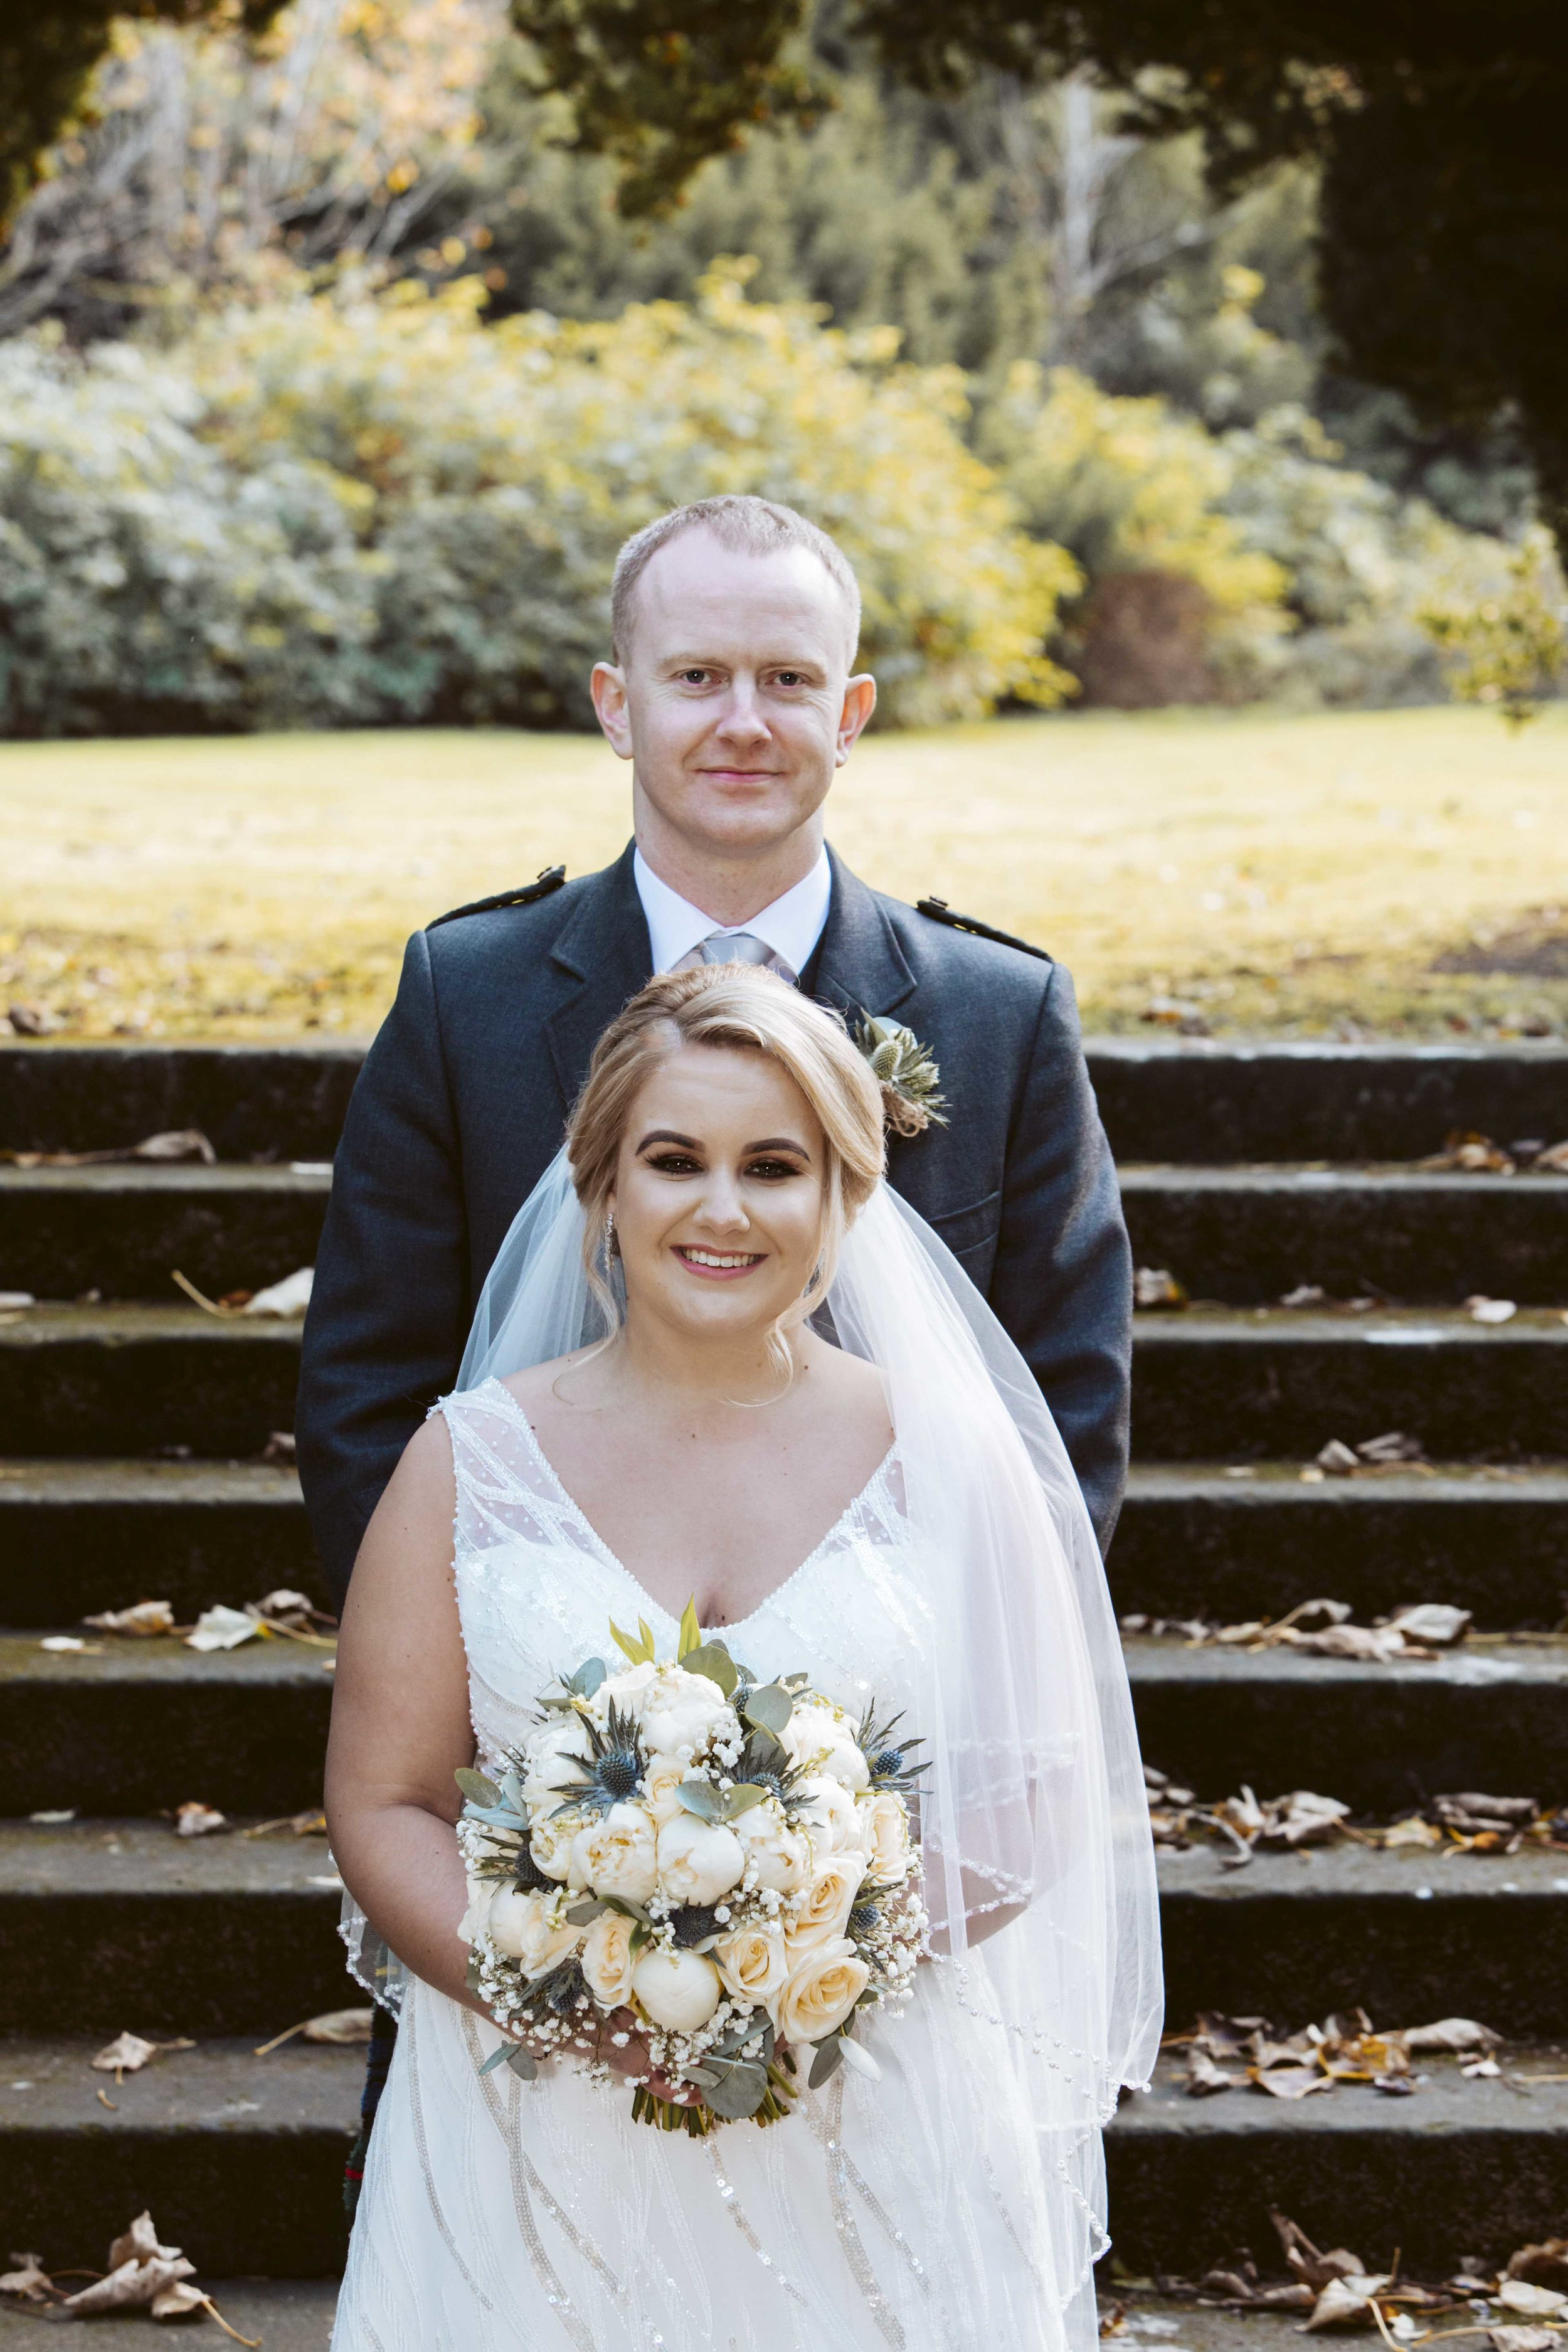 Mar Hall Wedding 2018, Haminsh & Emma McEwan 36.JPG